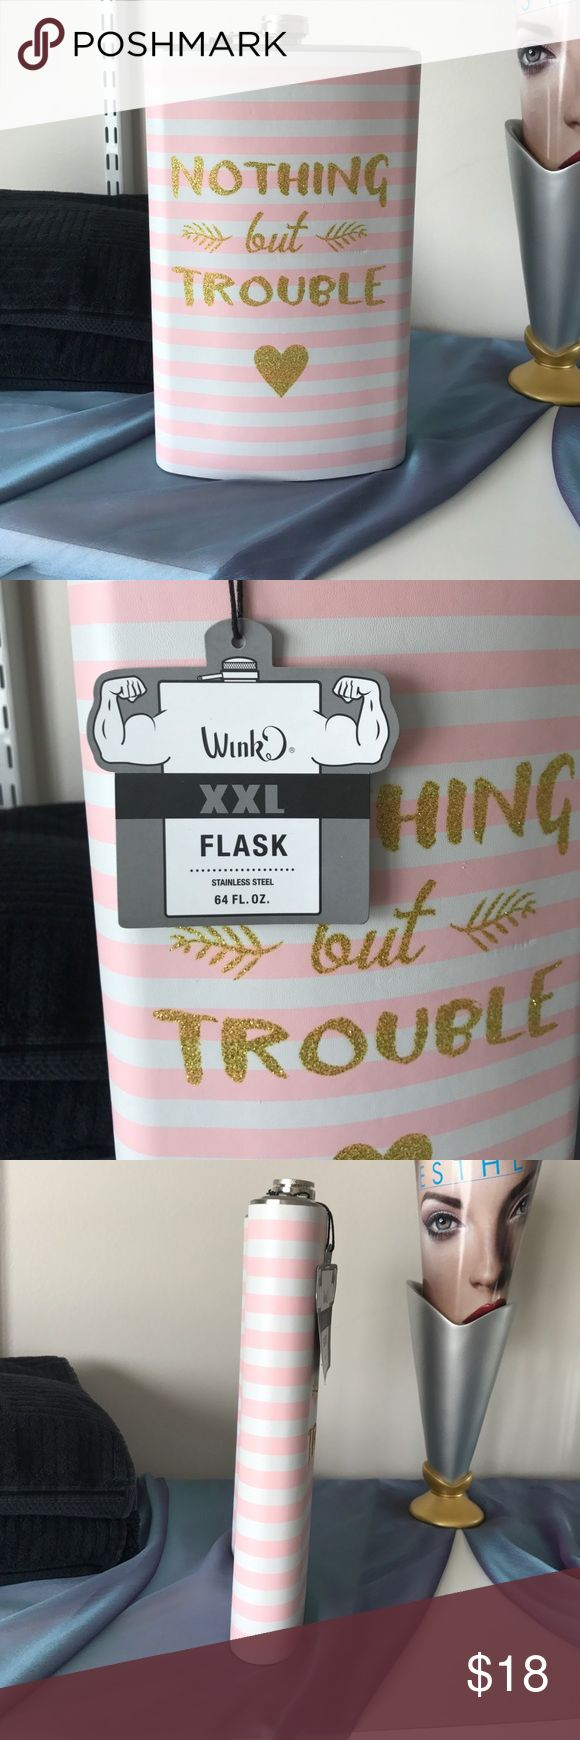 "NWT 64 fl. Oz ""nothing but trouble"" flask Brand new with tags pink and white (nothing but trouble) flask large 64 fl. Oz wink Accessories"